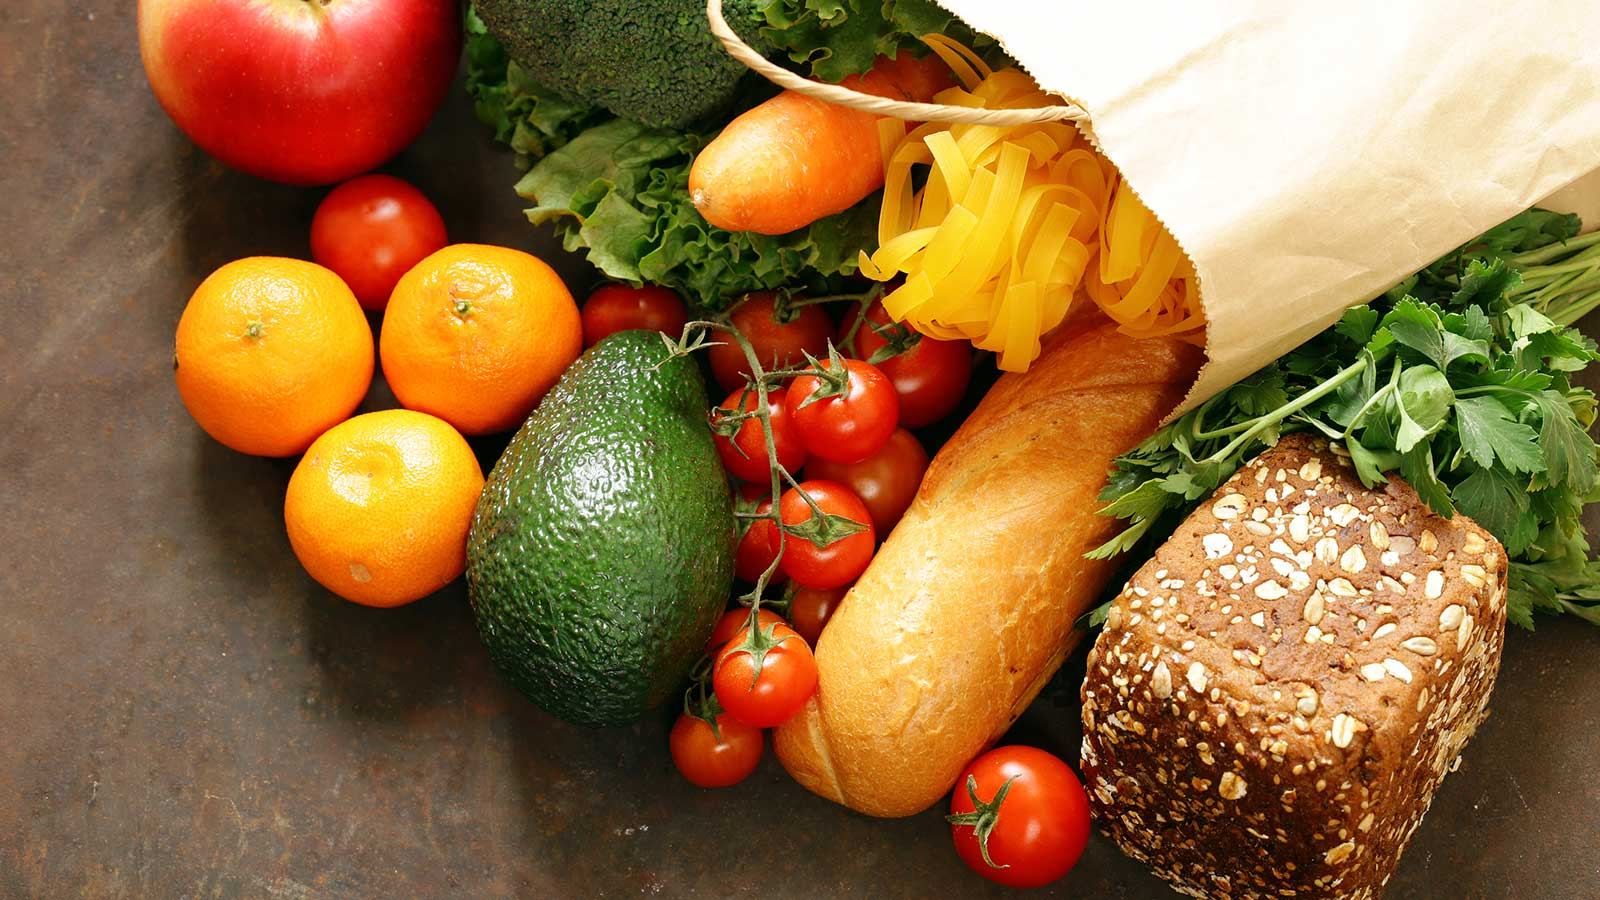 Wholesale Food Delivery Service and Equipment | Portland, ME